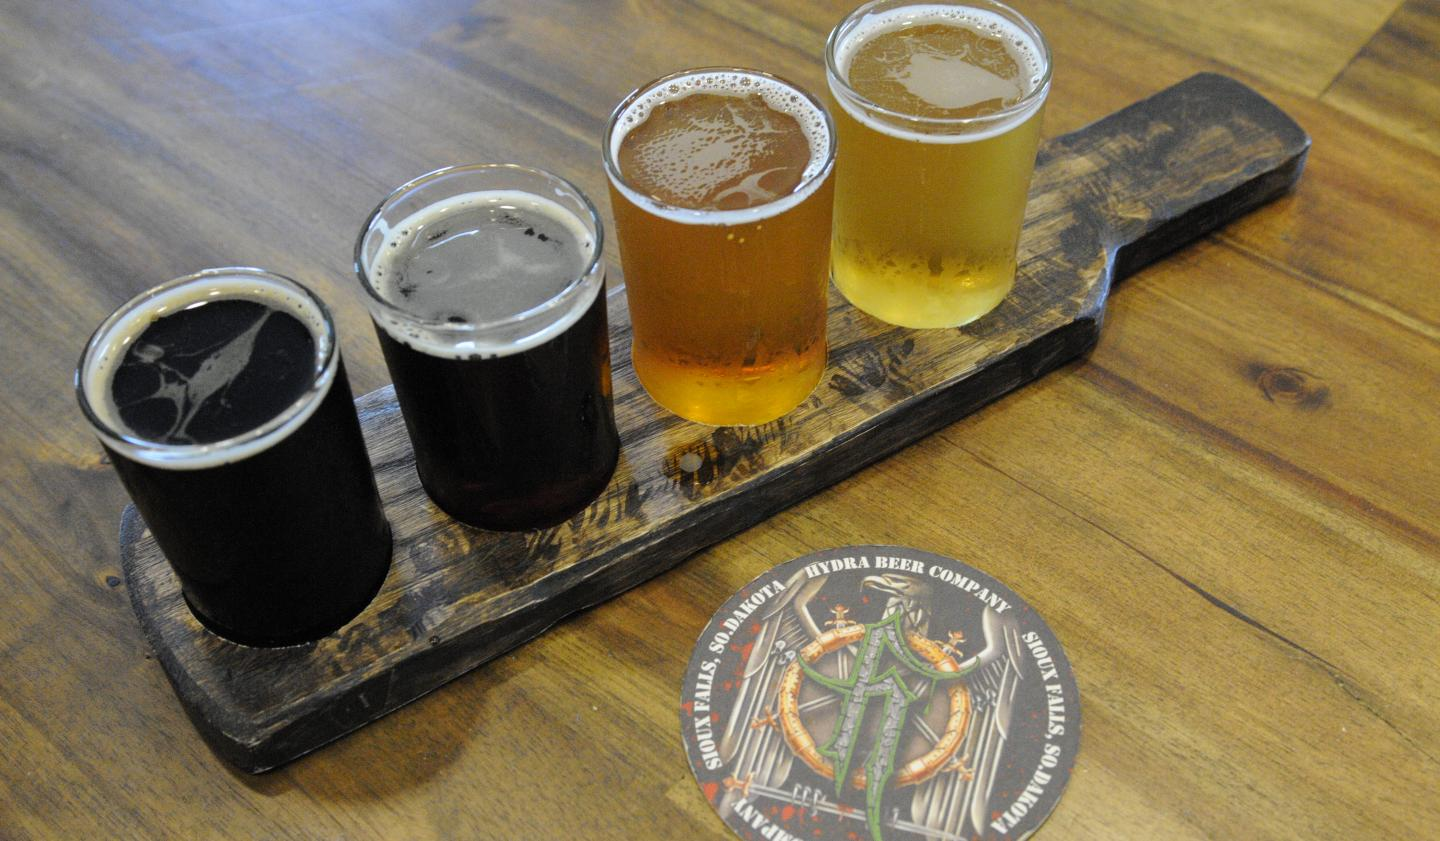 Hydra Beer Company, Sioux Falls